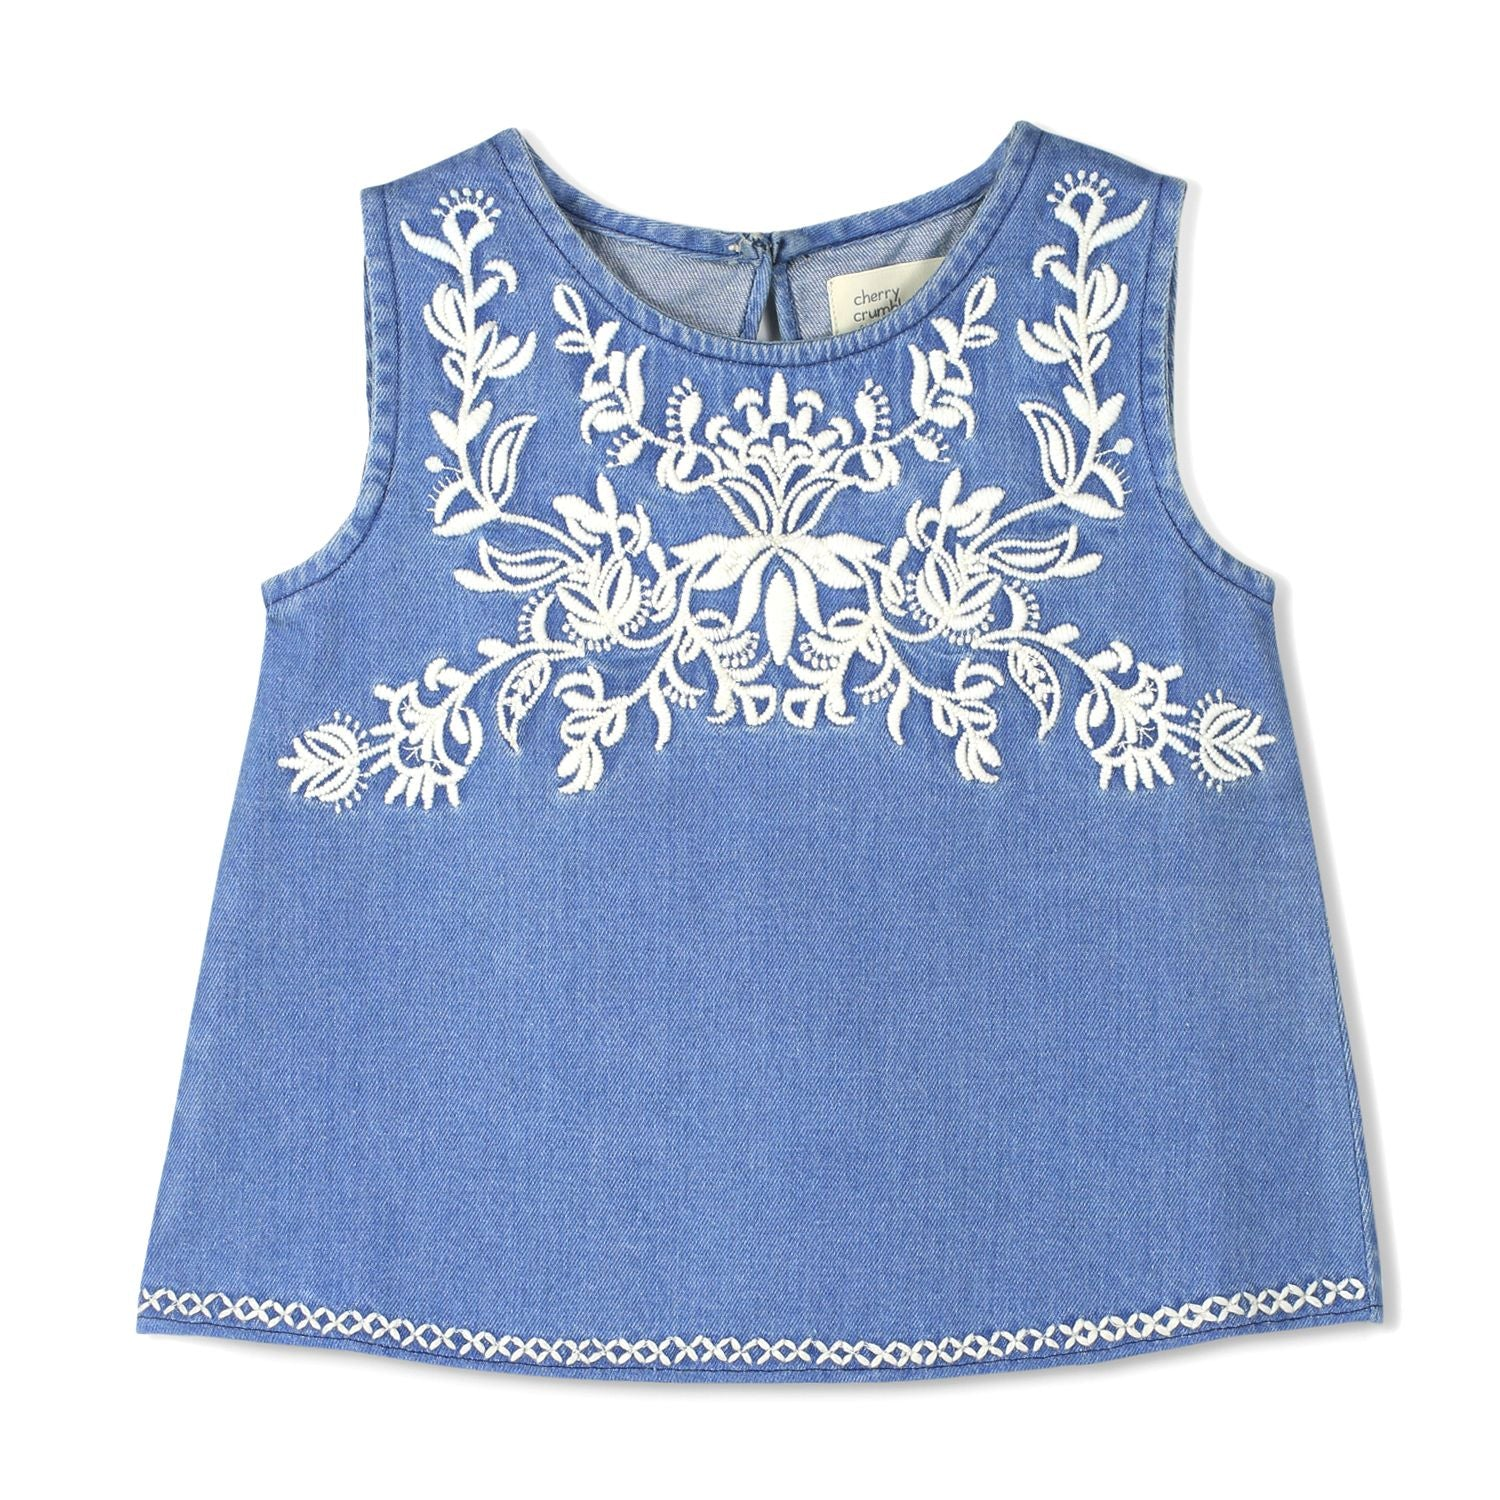 Embroidered Shell Tank Top for Girls